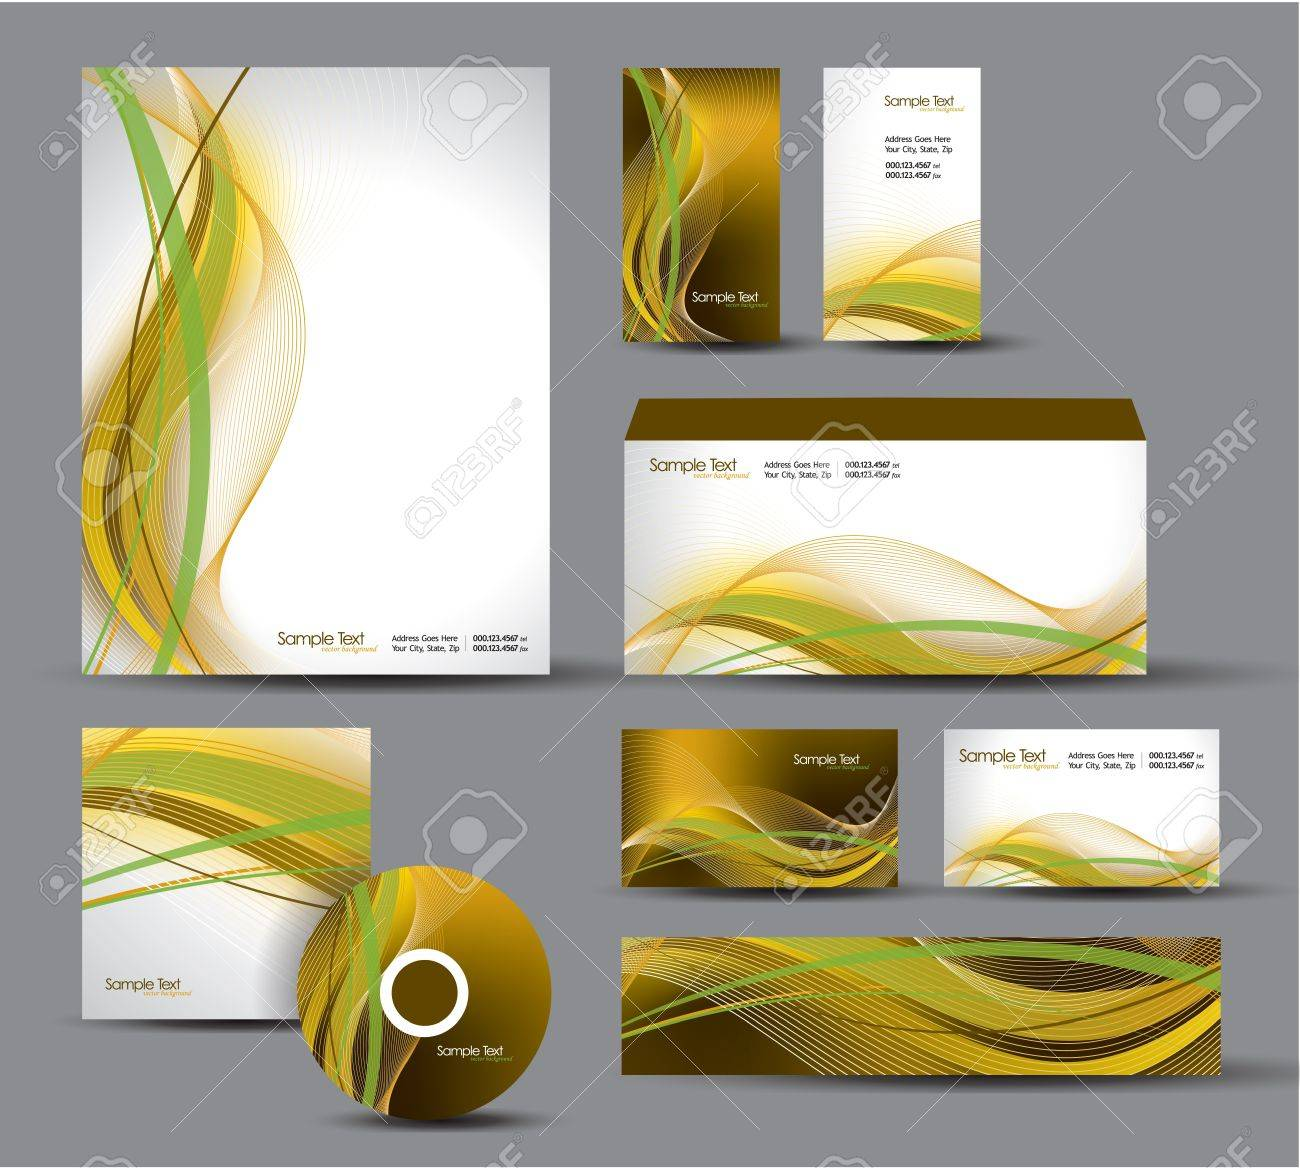 Business Gift Card Gallery - Free Business Cards